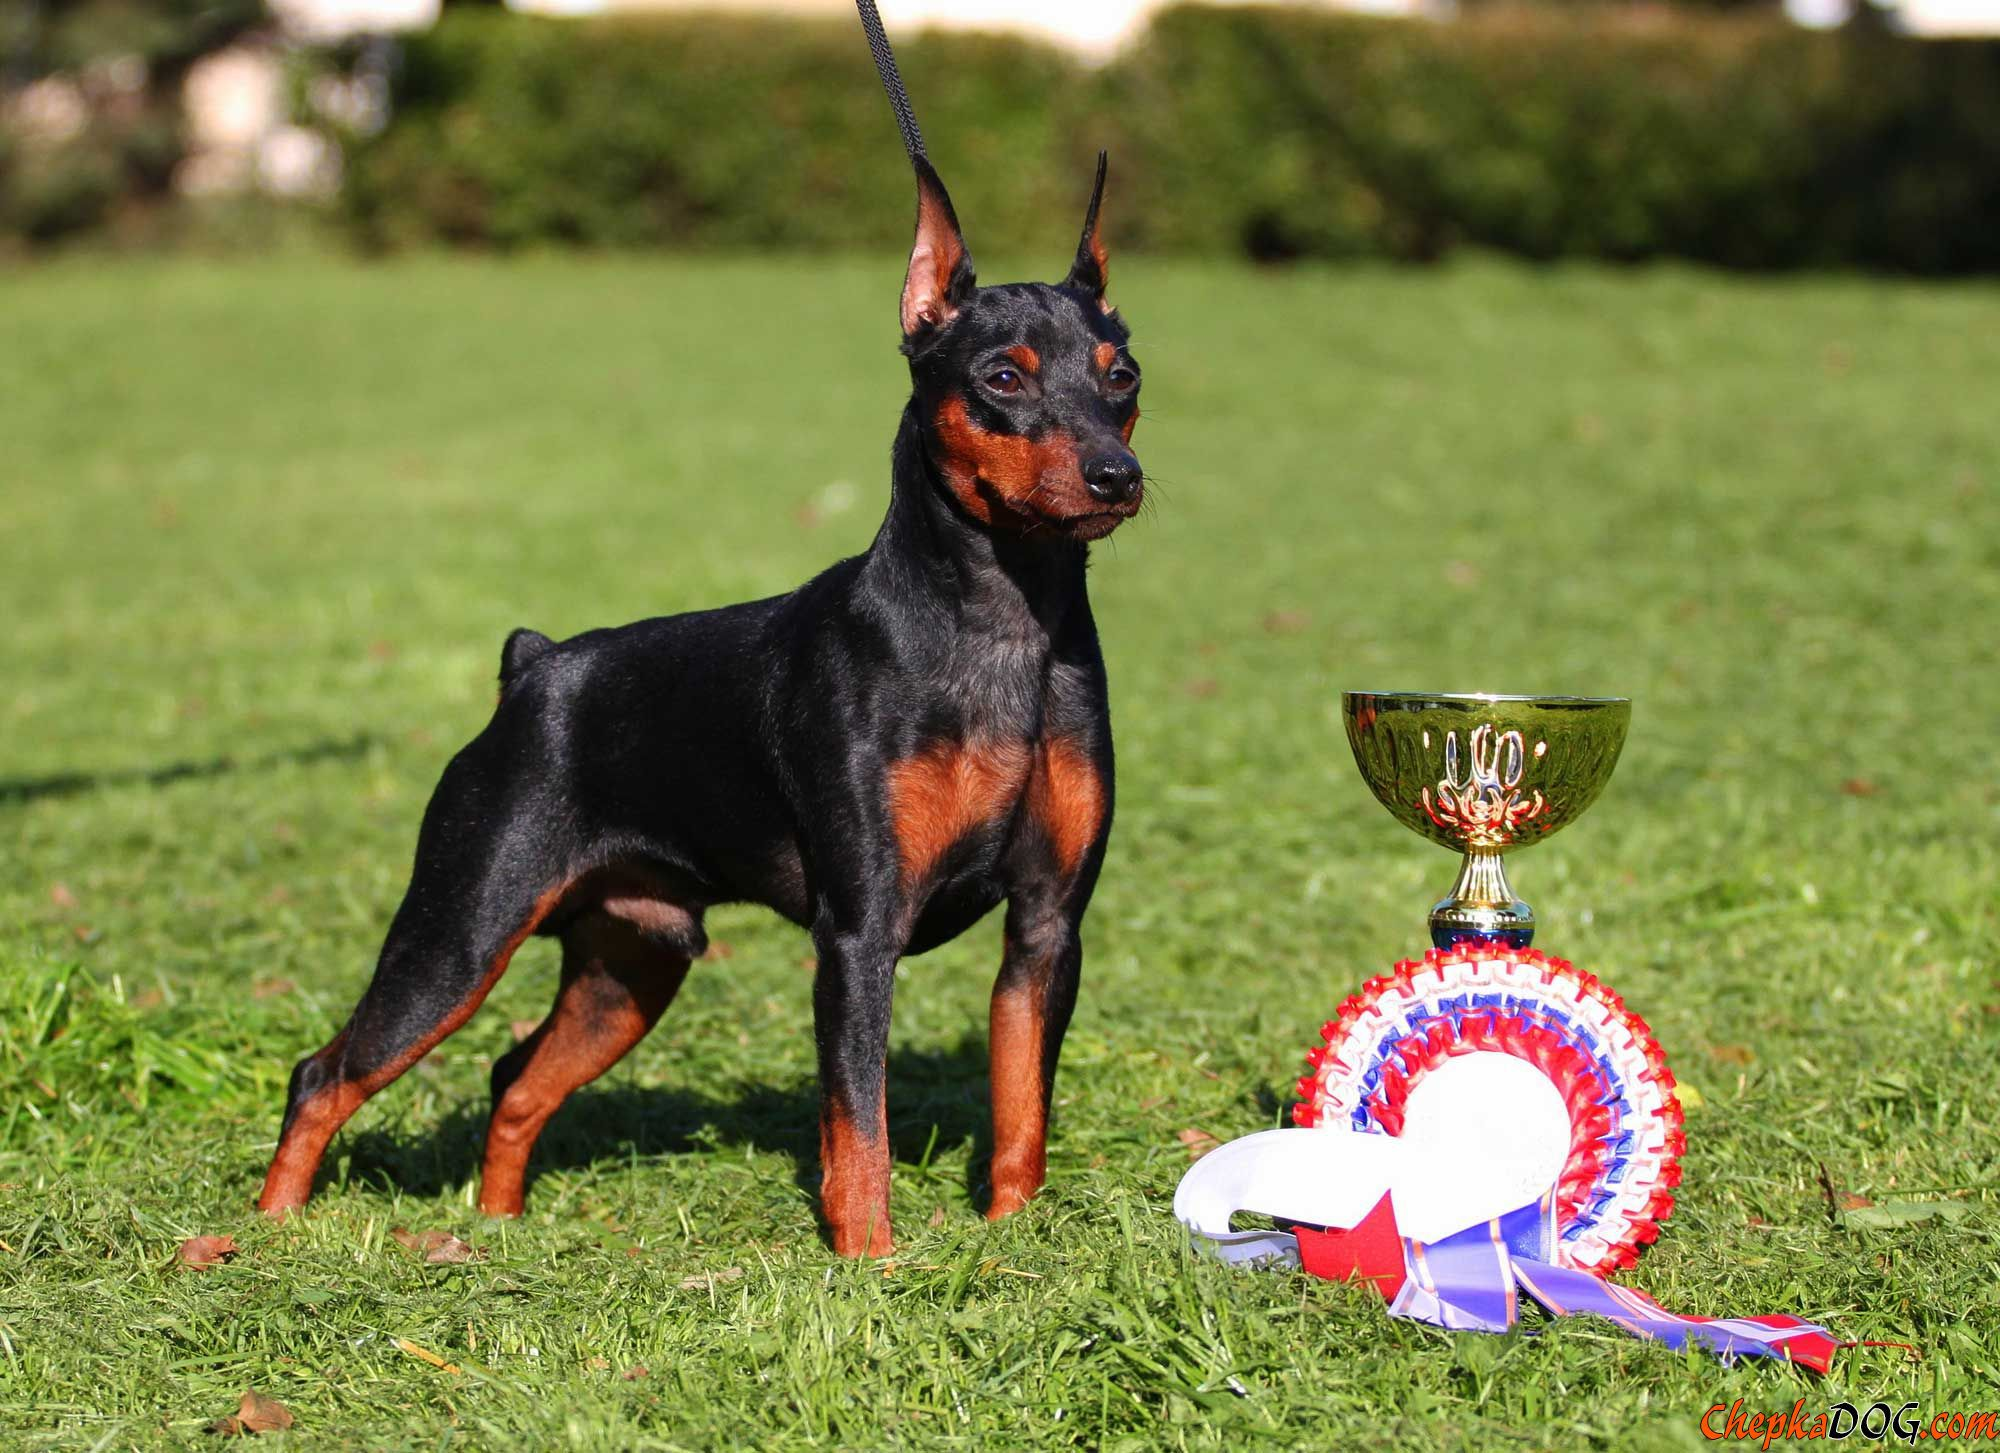 Miniature Pinscher and his prizes wallpapers and images   wallpapers 2000x1453